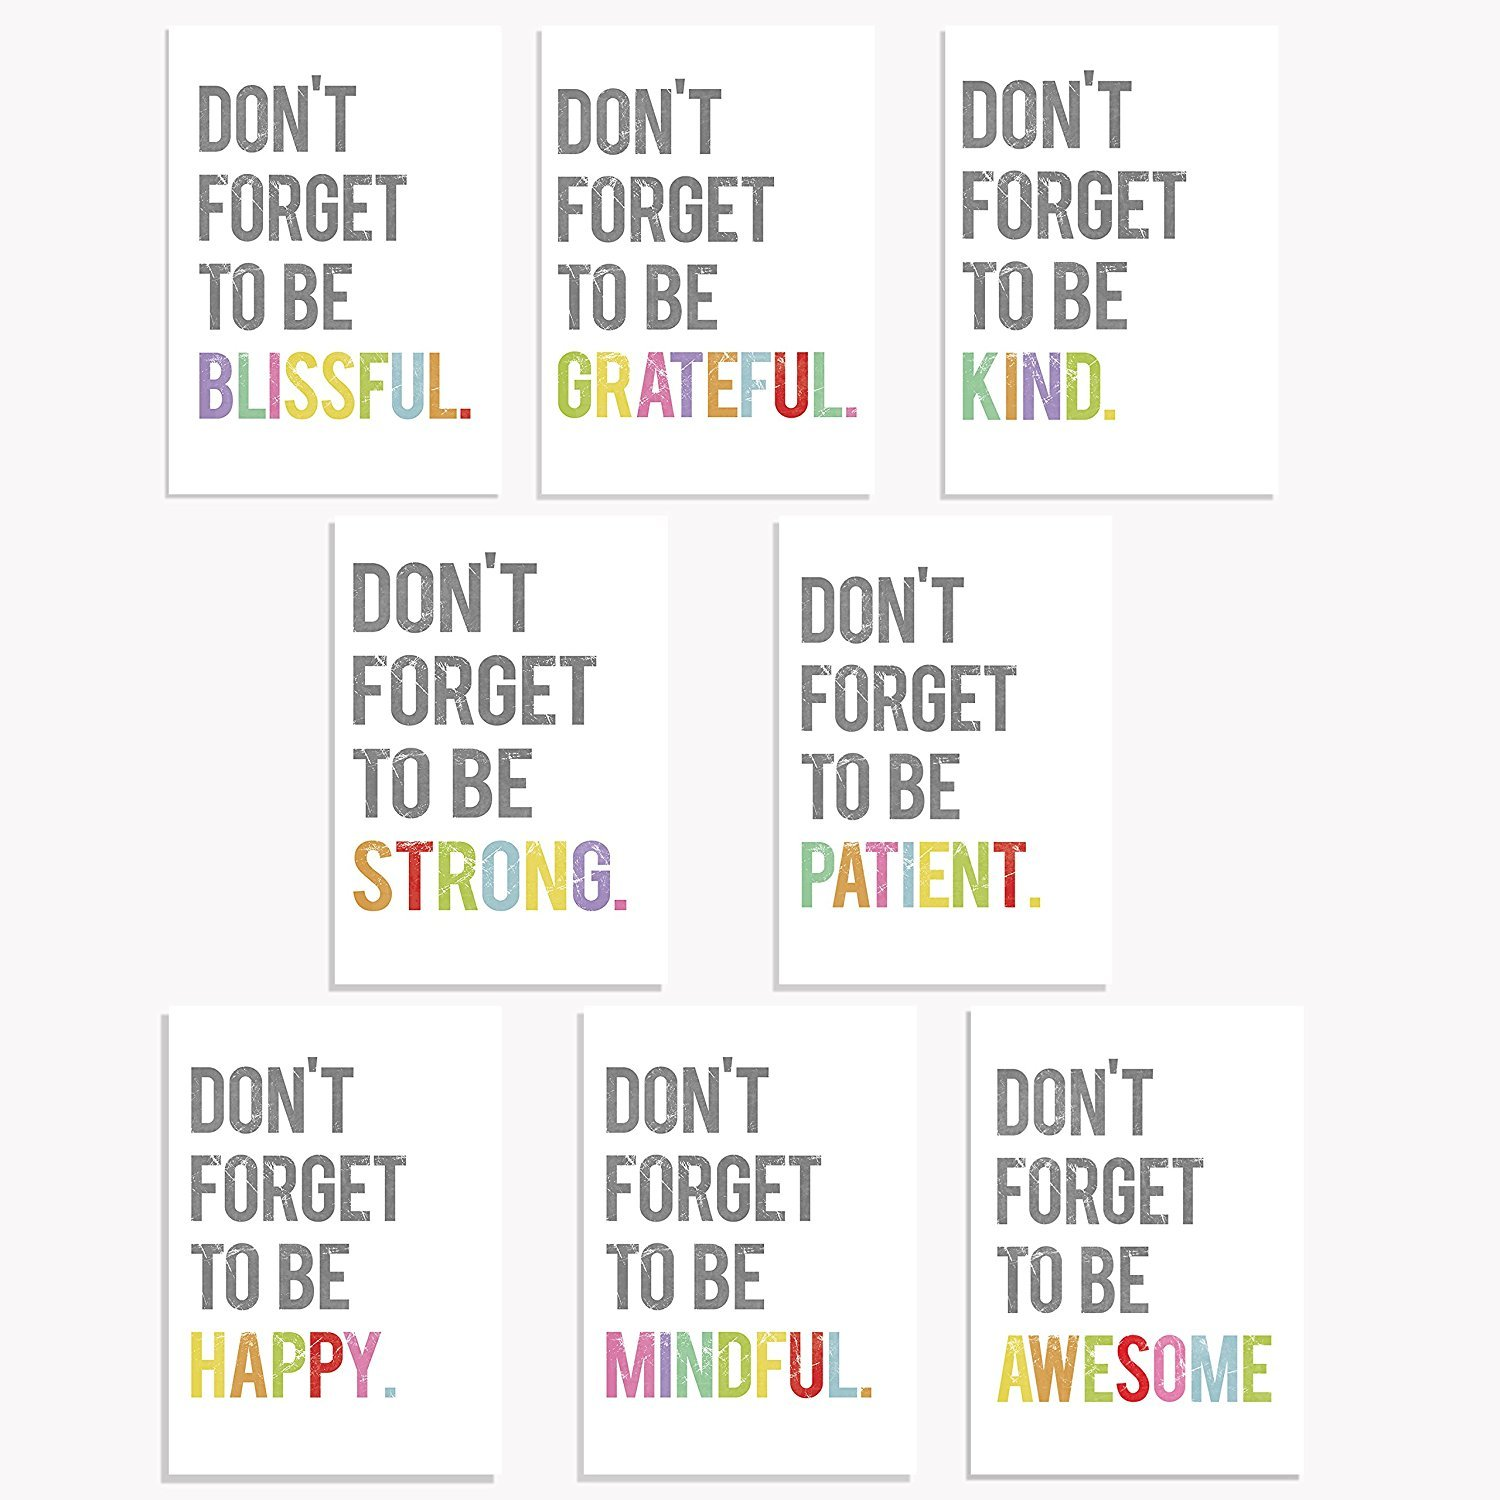 Don't Forget Mini Collection 5x7 Wall Art Prints, Typography, Kid's Wall Art Print, Kid's Room Decor, Gender Neutral, Motivational Word Art